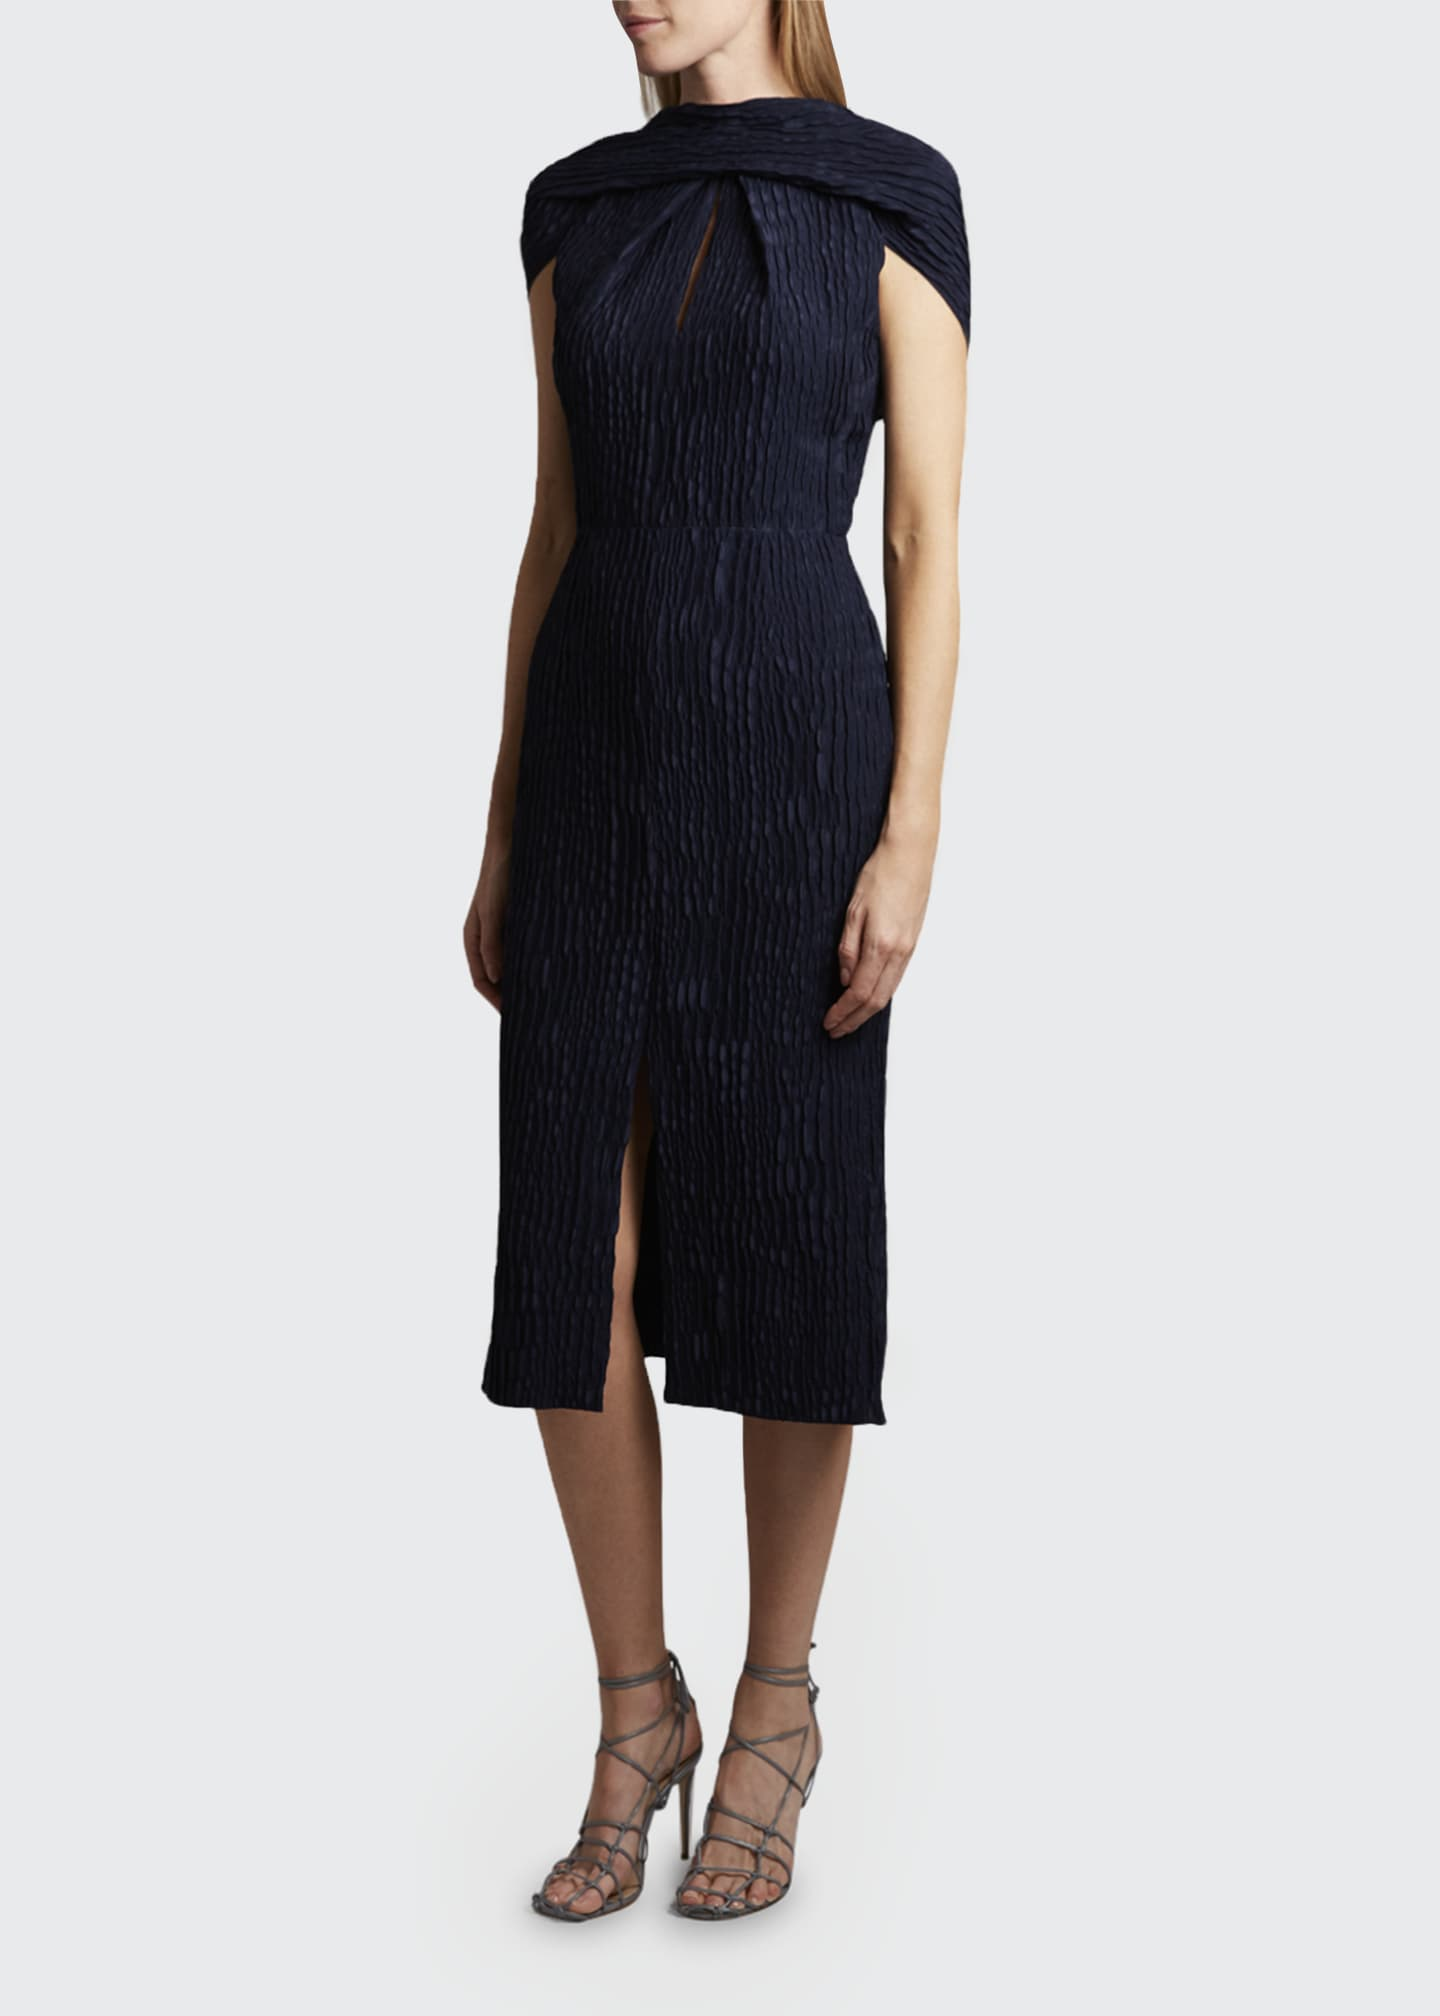 Image 1 of 3: Belem Dress Silk Jacquard High Neck Dress